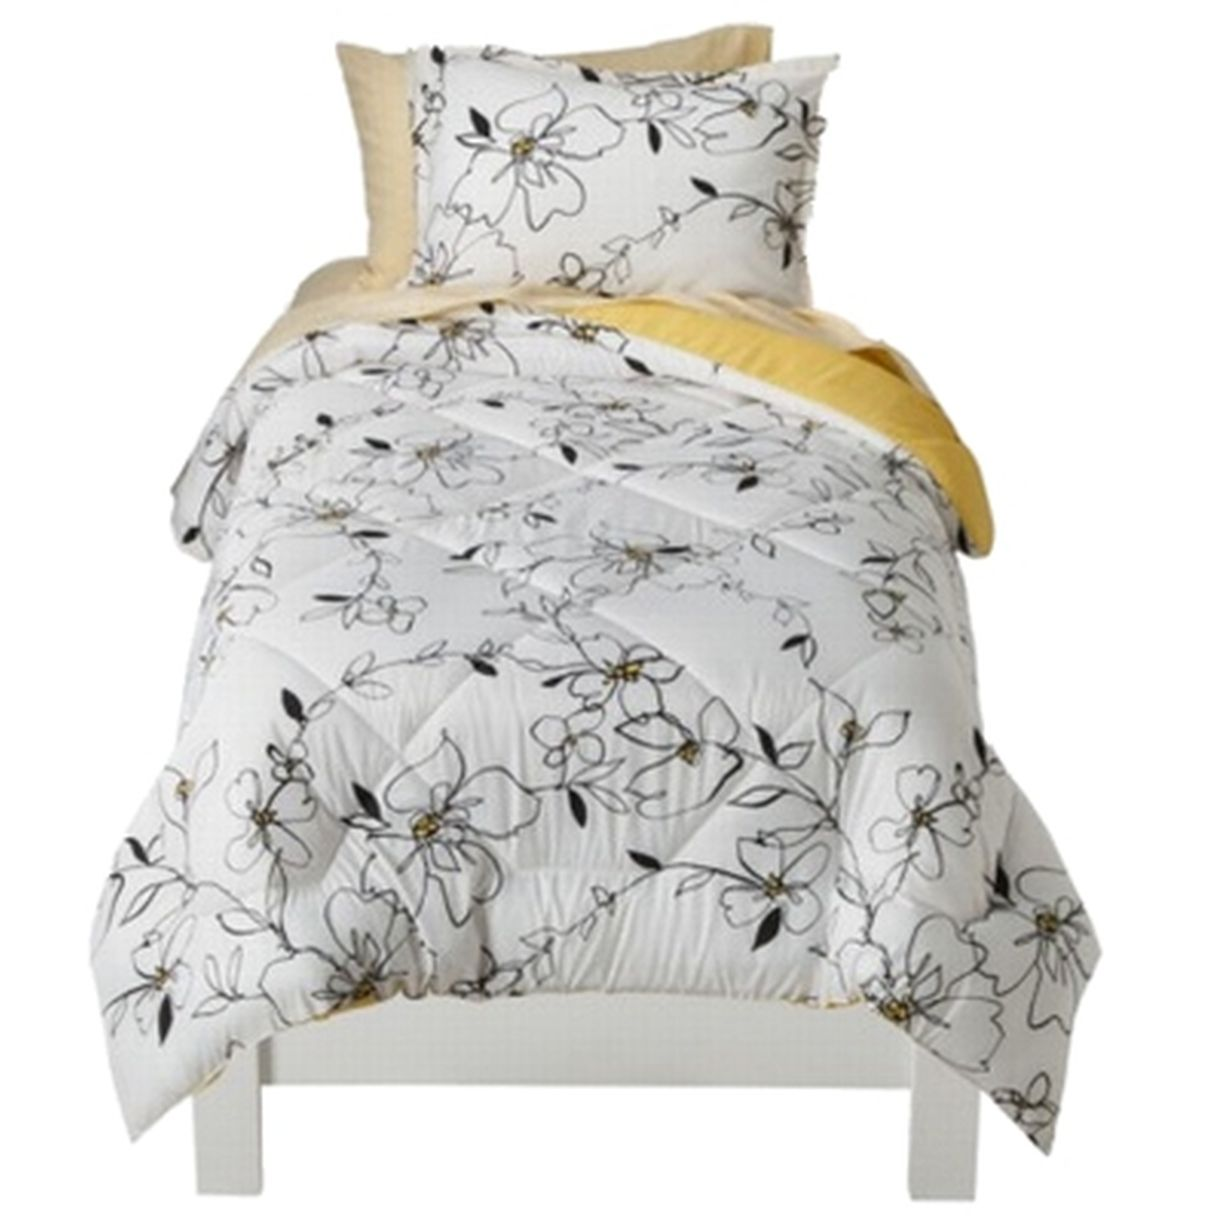 Floral Twin XL Bed in Bag Yellow Black & White Comforter Set Sheets Shams 5 pc